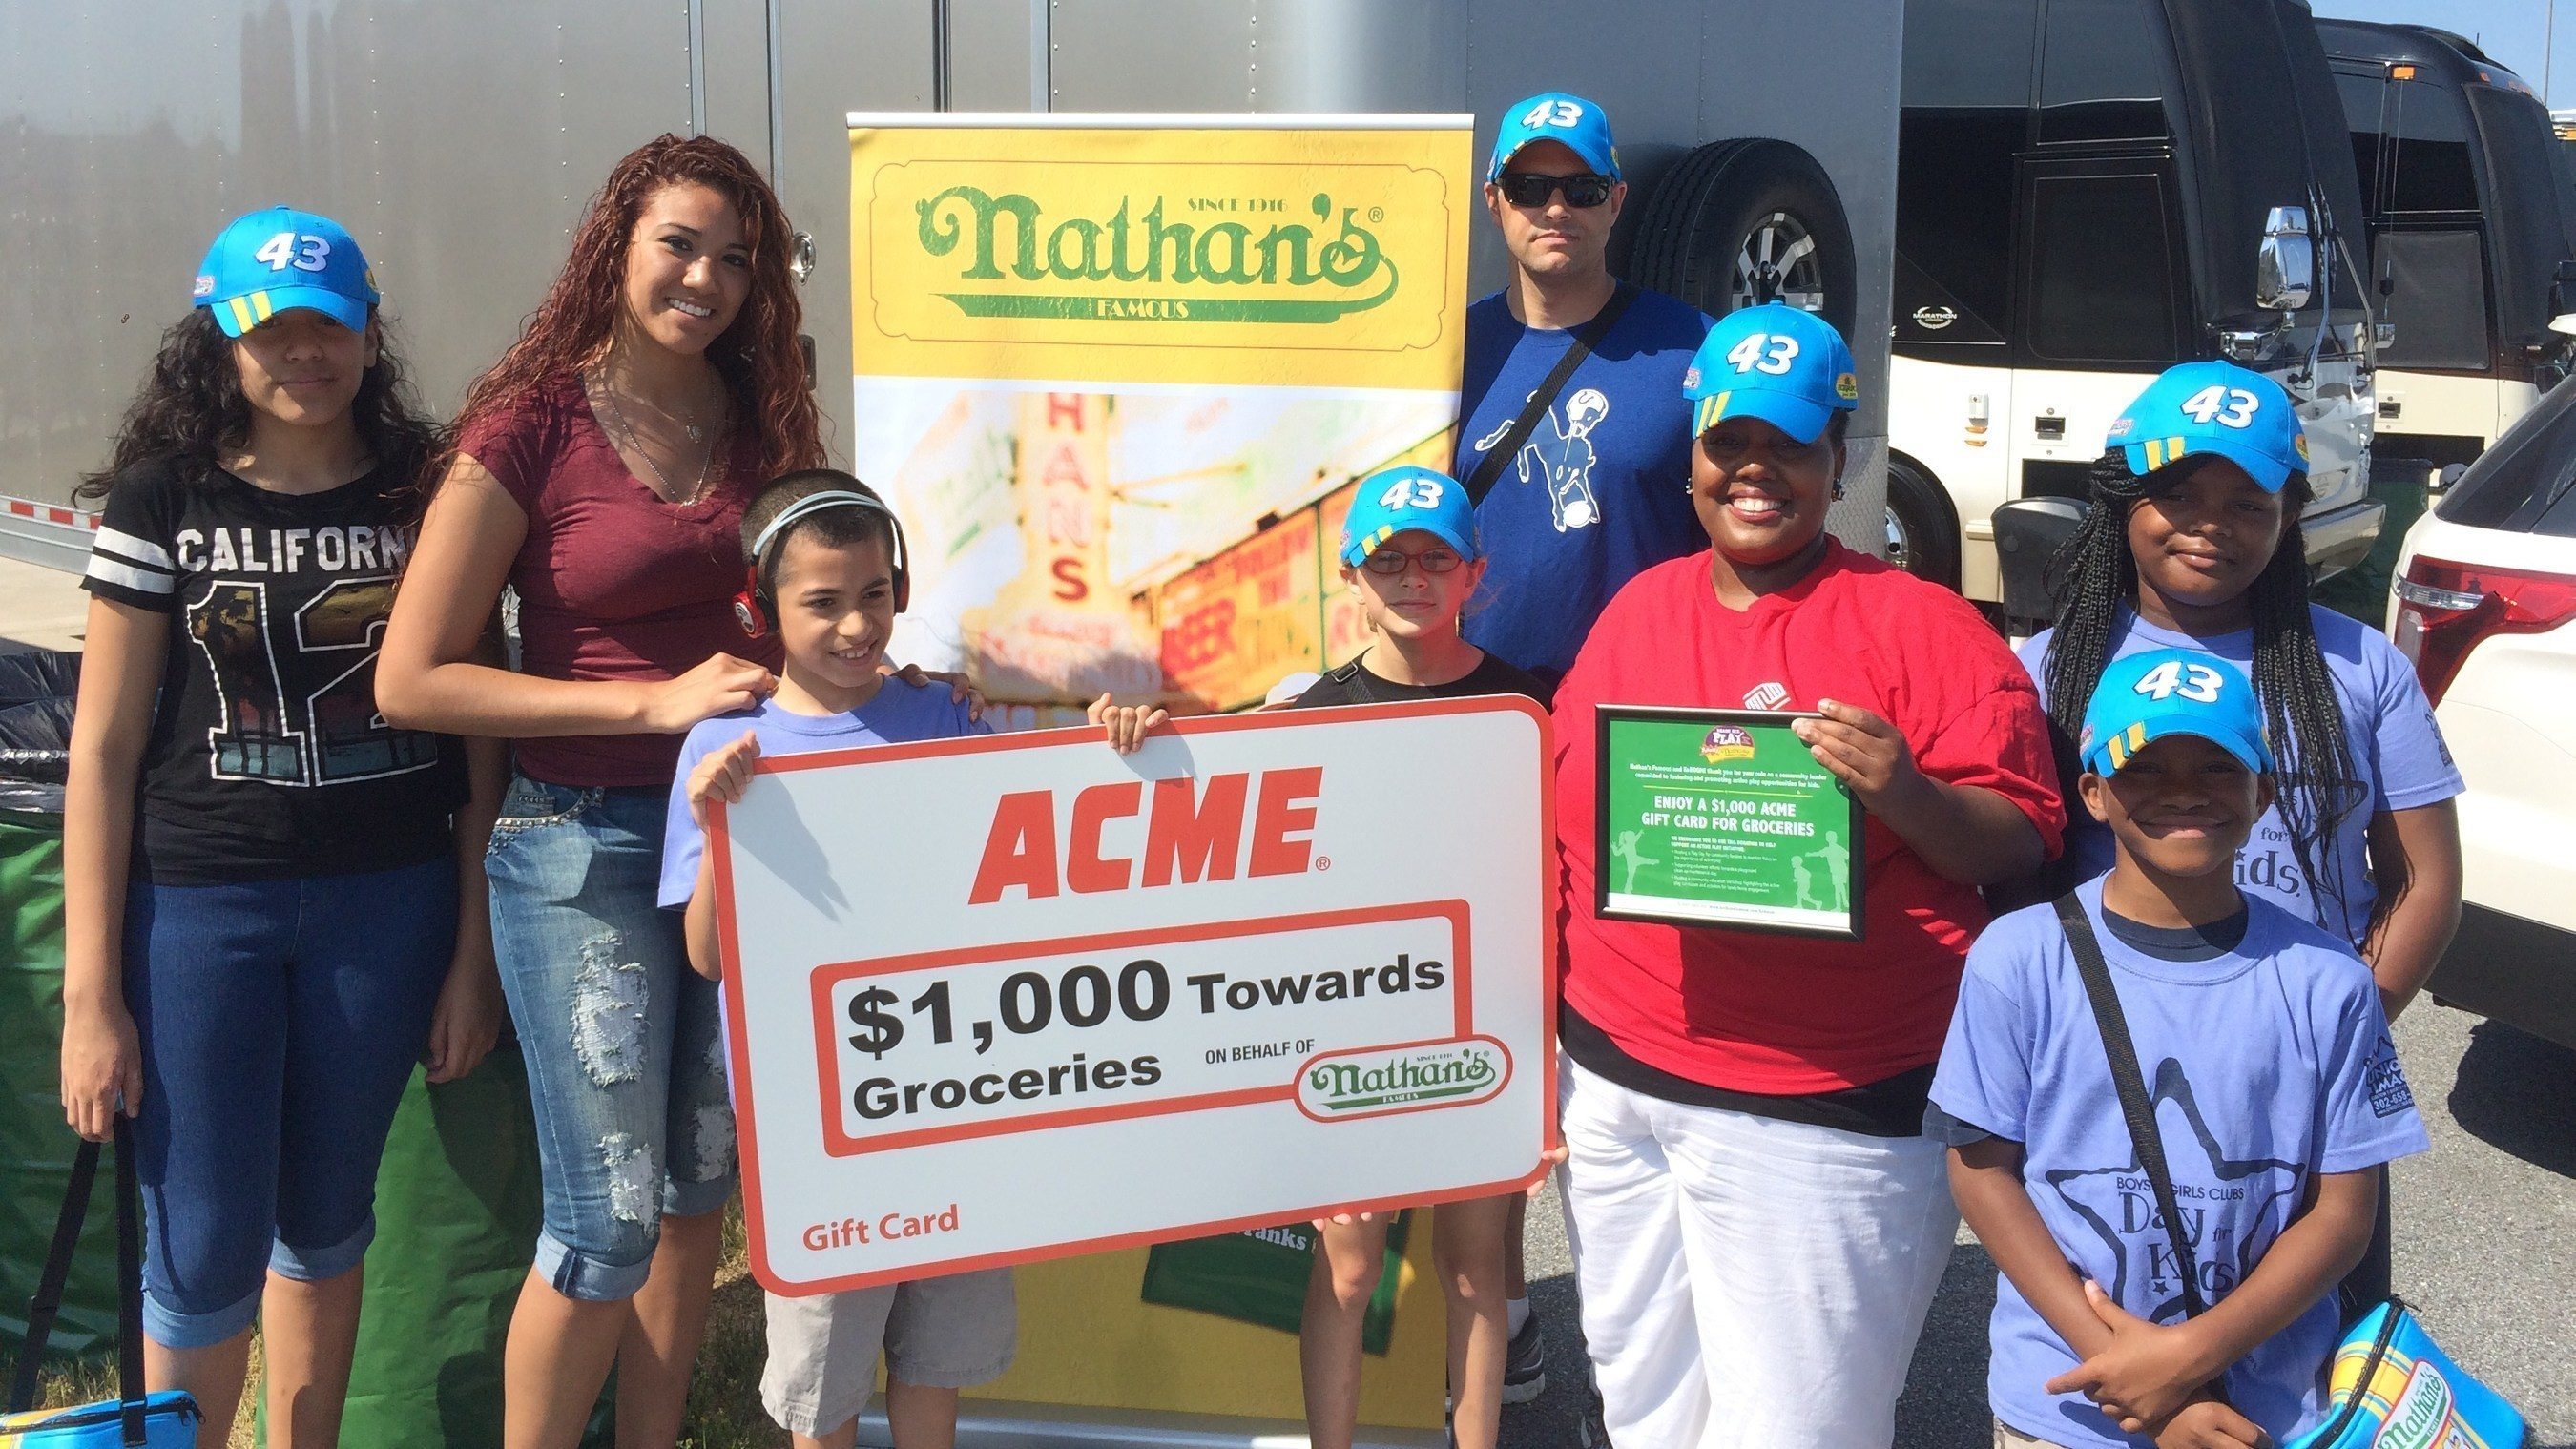 Nathan's Famous presented representatives from the Boys and Girls Clubs of Delaware in Milford with an ACME gift card worth $1,000 towards the purchase of groceries, courtesy of Nathan's Famous.